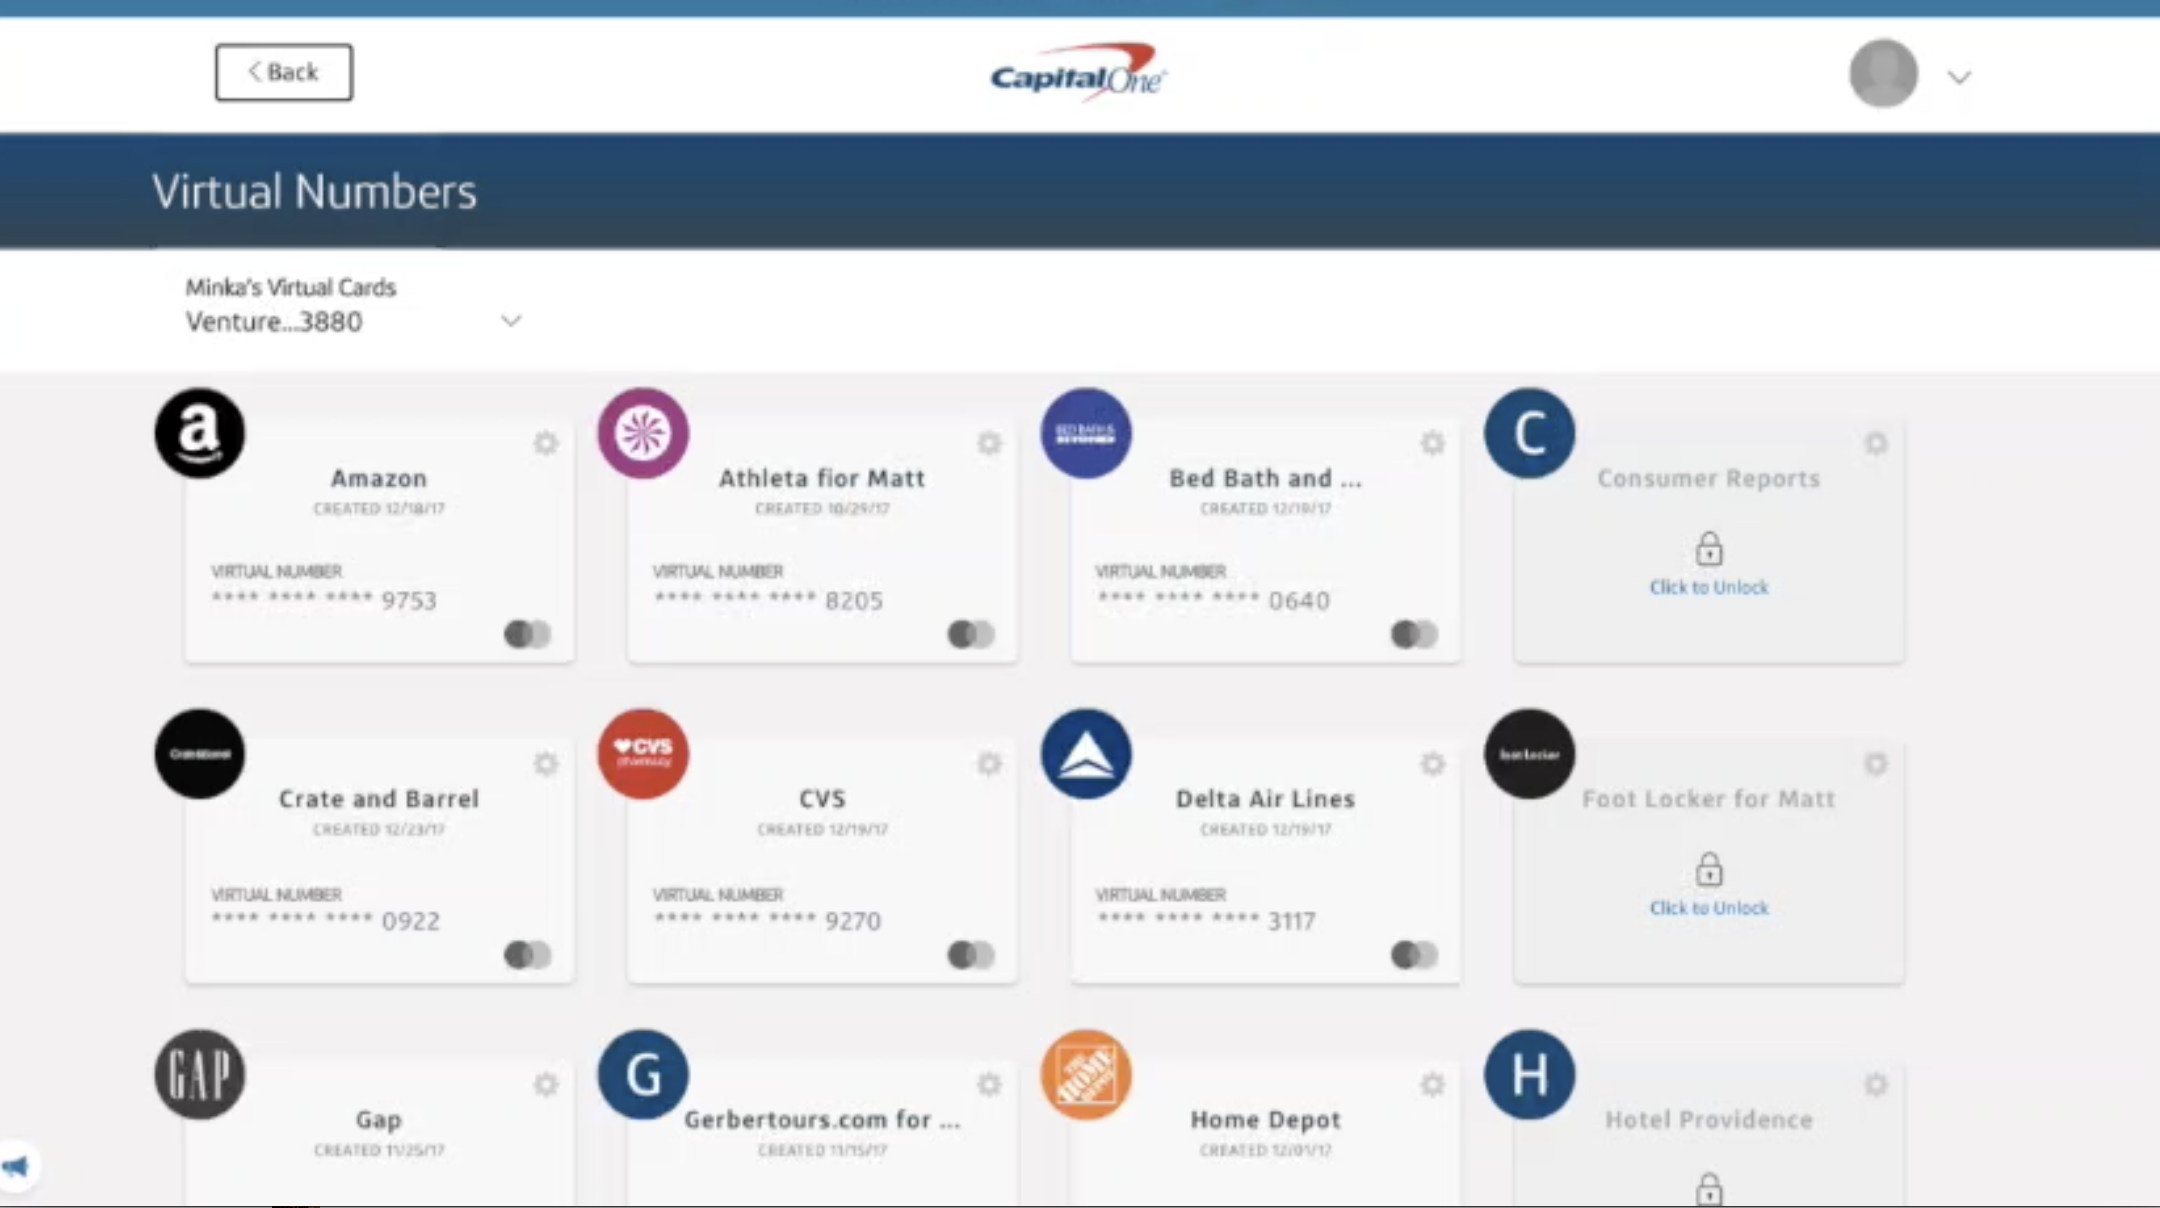 Check my capital one credit card balance online